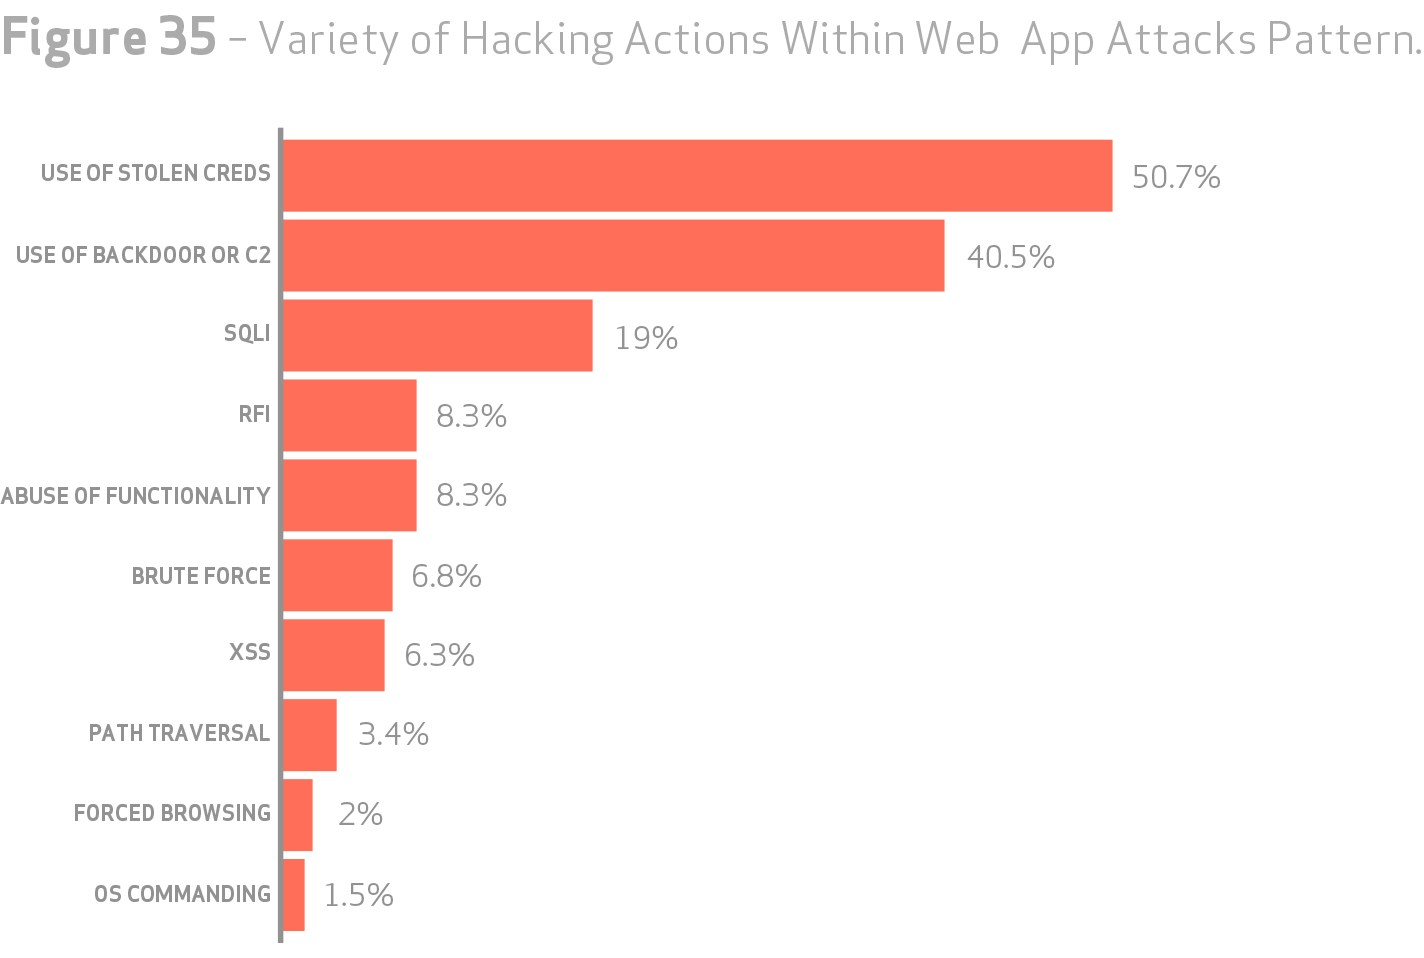 grafik verizon variety of hacking actions